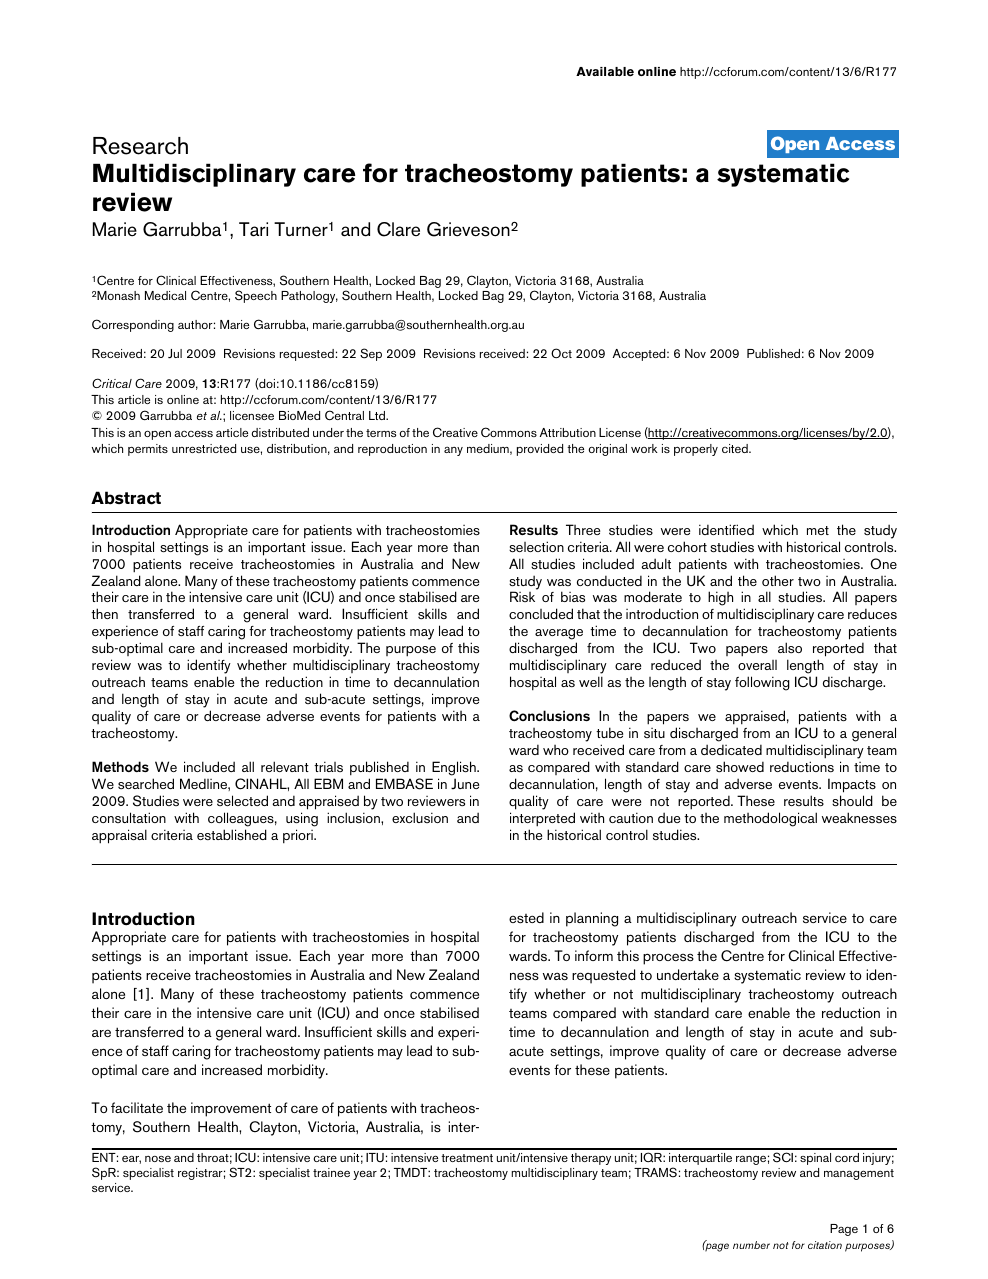 Multidisciplinary care for tracheostomy patients: a systematic